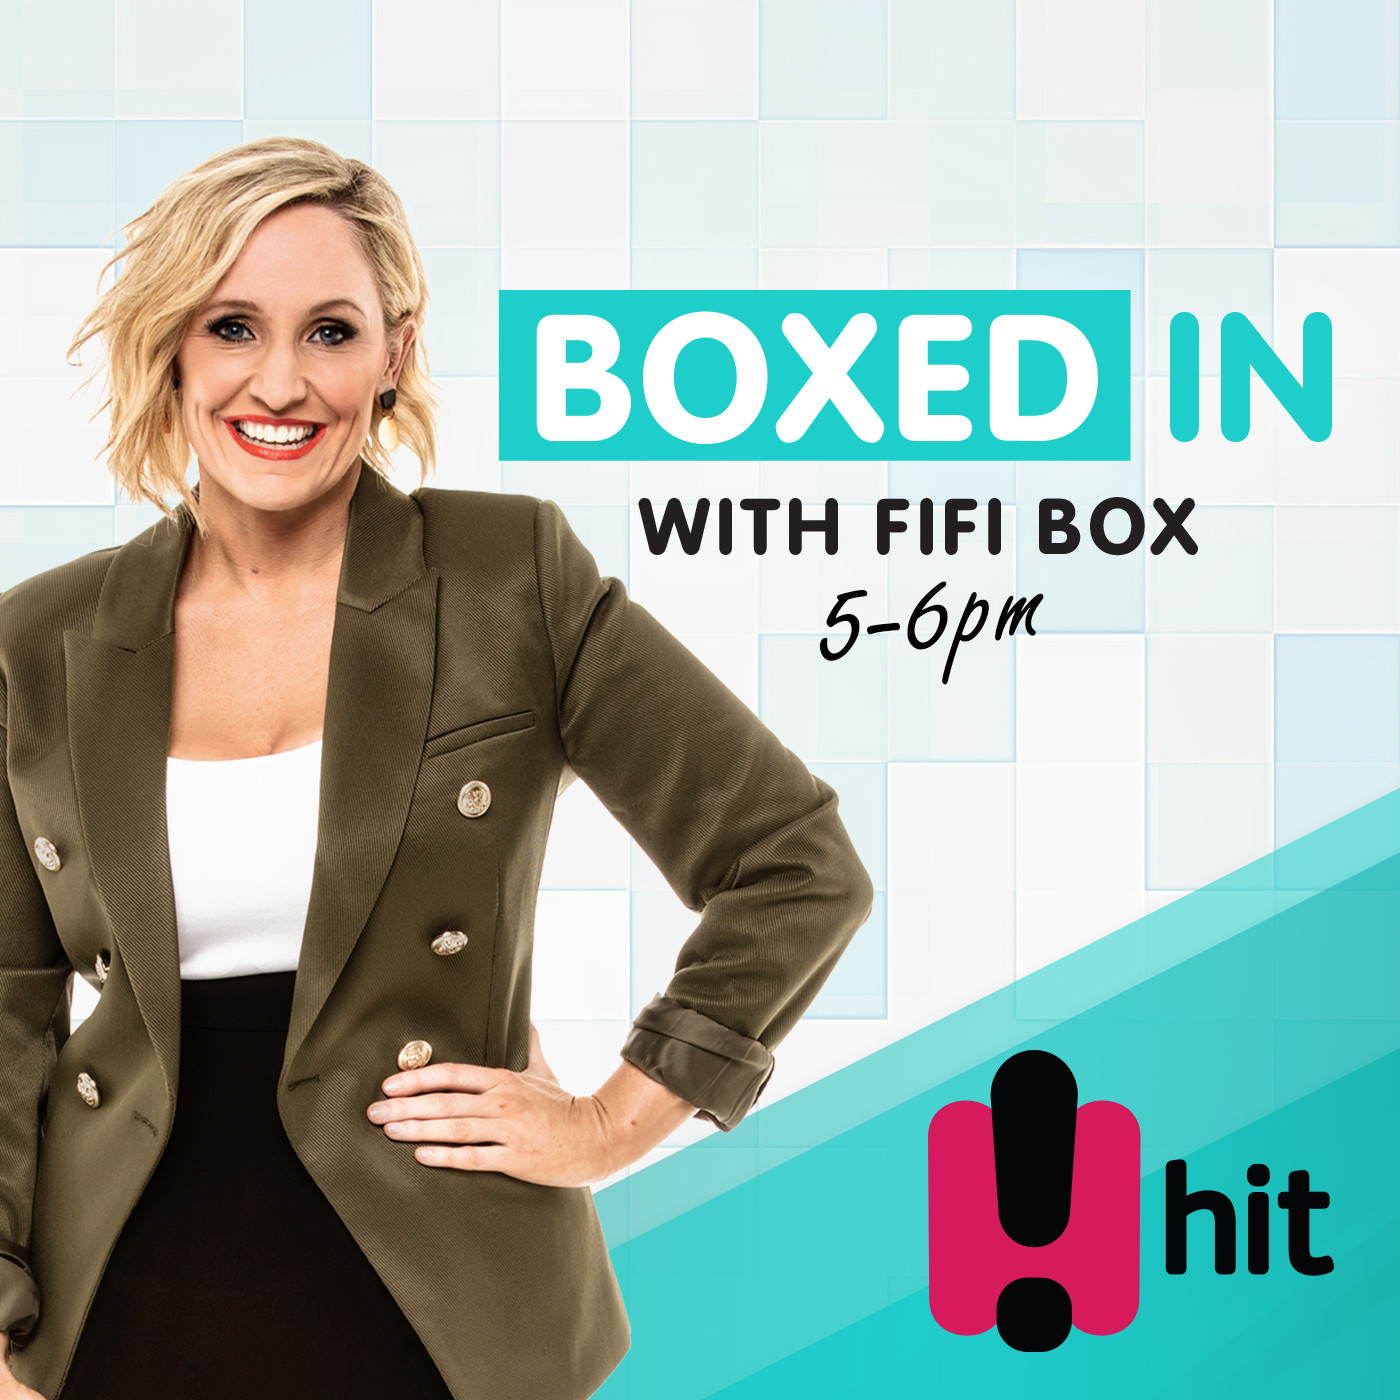 Boxed in with Fifi Box Podcast